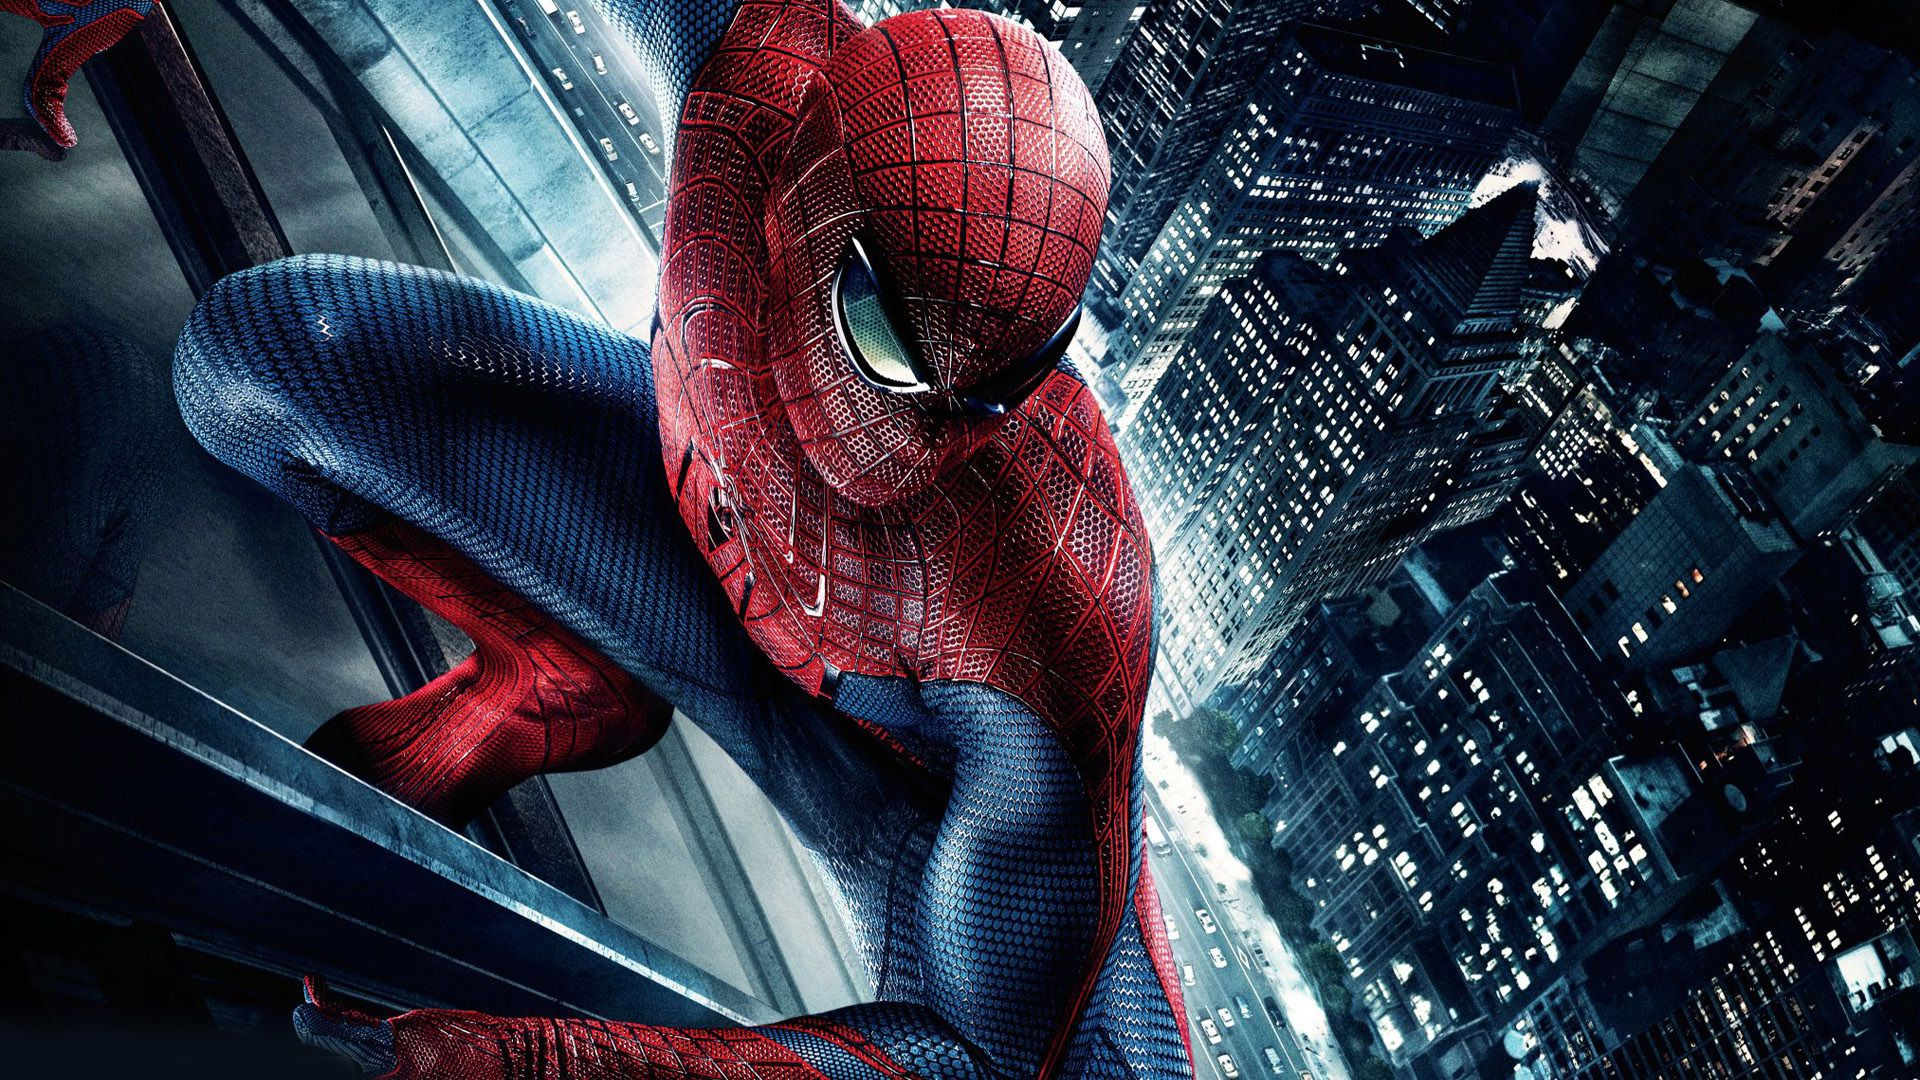 Spiderman Wallpaper 1920x1080 - WallpaperSafari